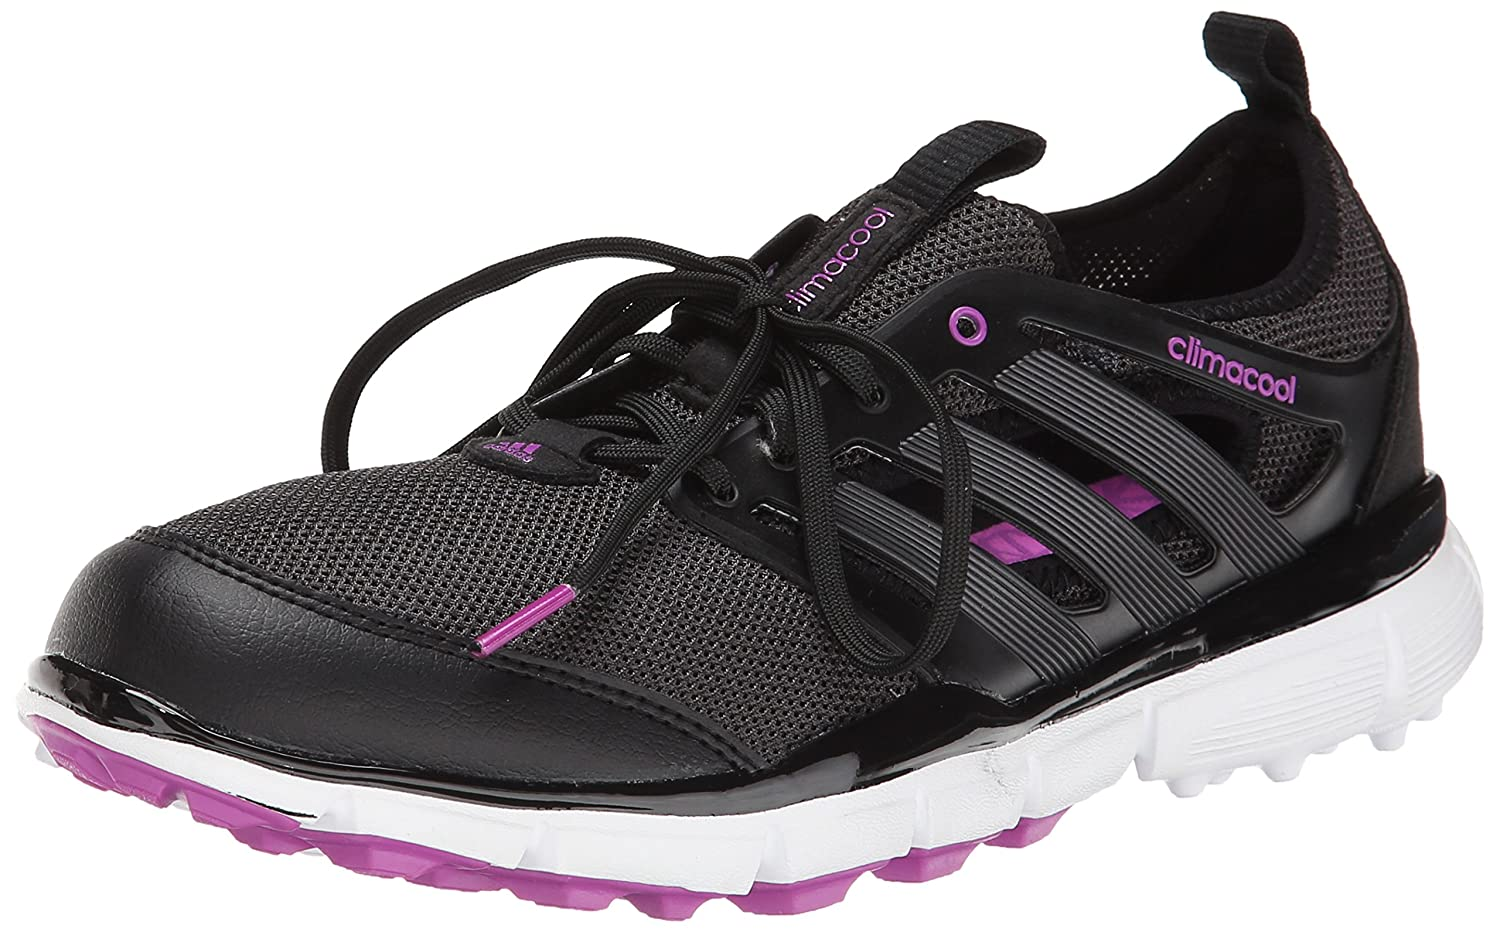 adidas Women's W Climacool II Golf Shoe B00NVV820U 8 B(M) US|Core Black/Iron Metallic/Flash Pink